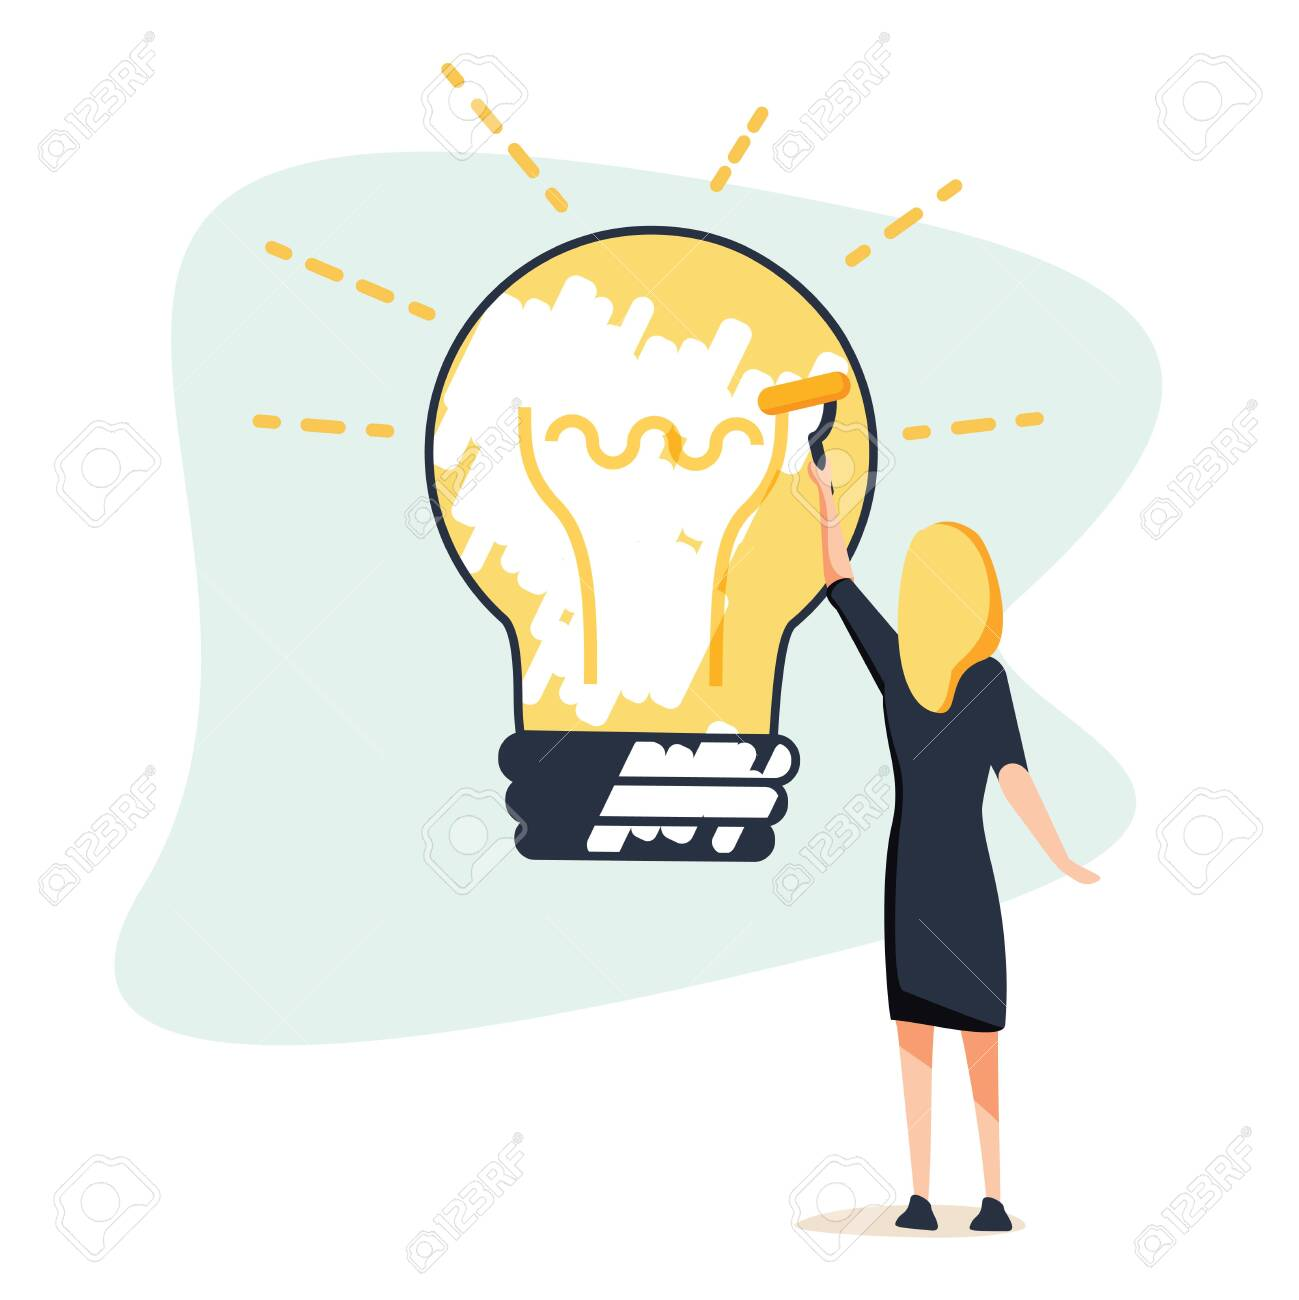 Big idea concept. Business woman draws large light bulb on wall. Symbol of new discoveries and startap. Web template. - 132302553